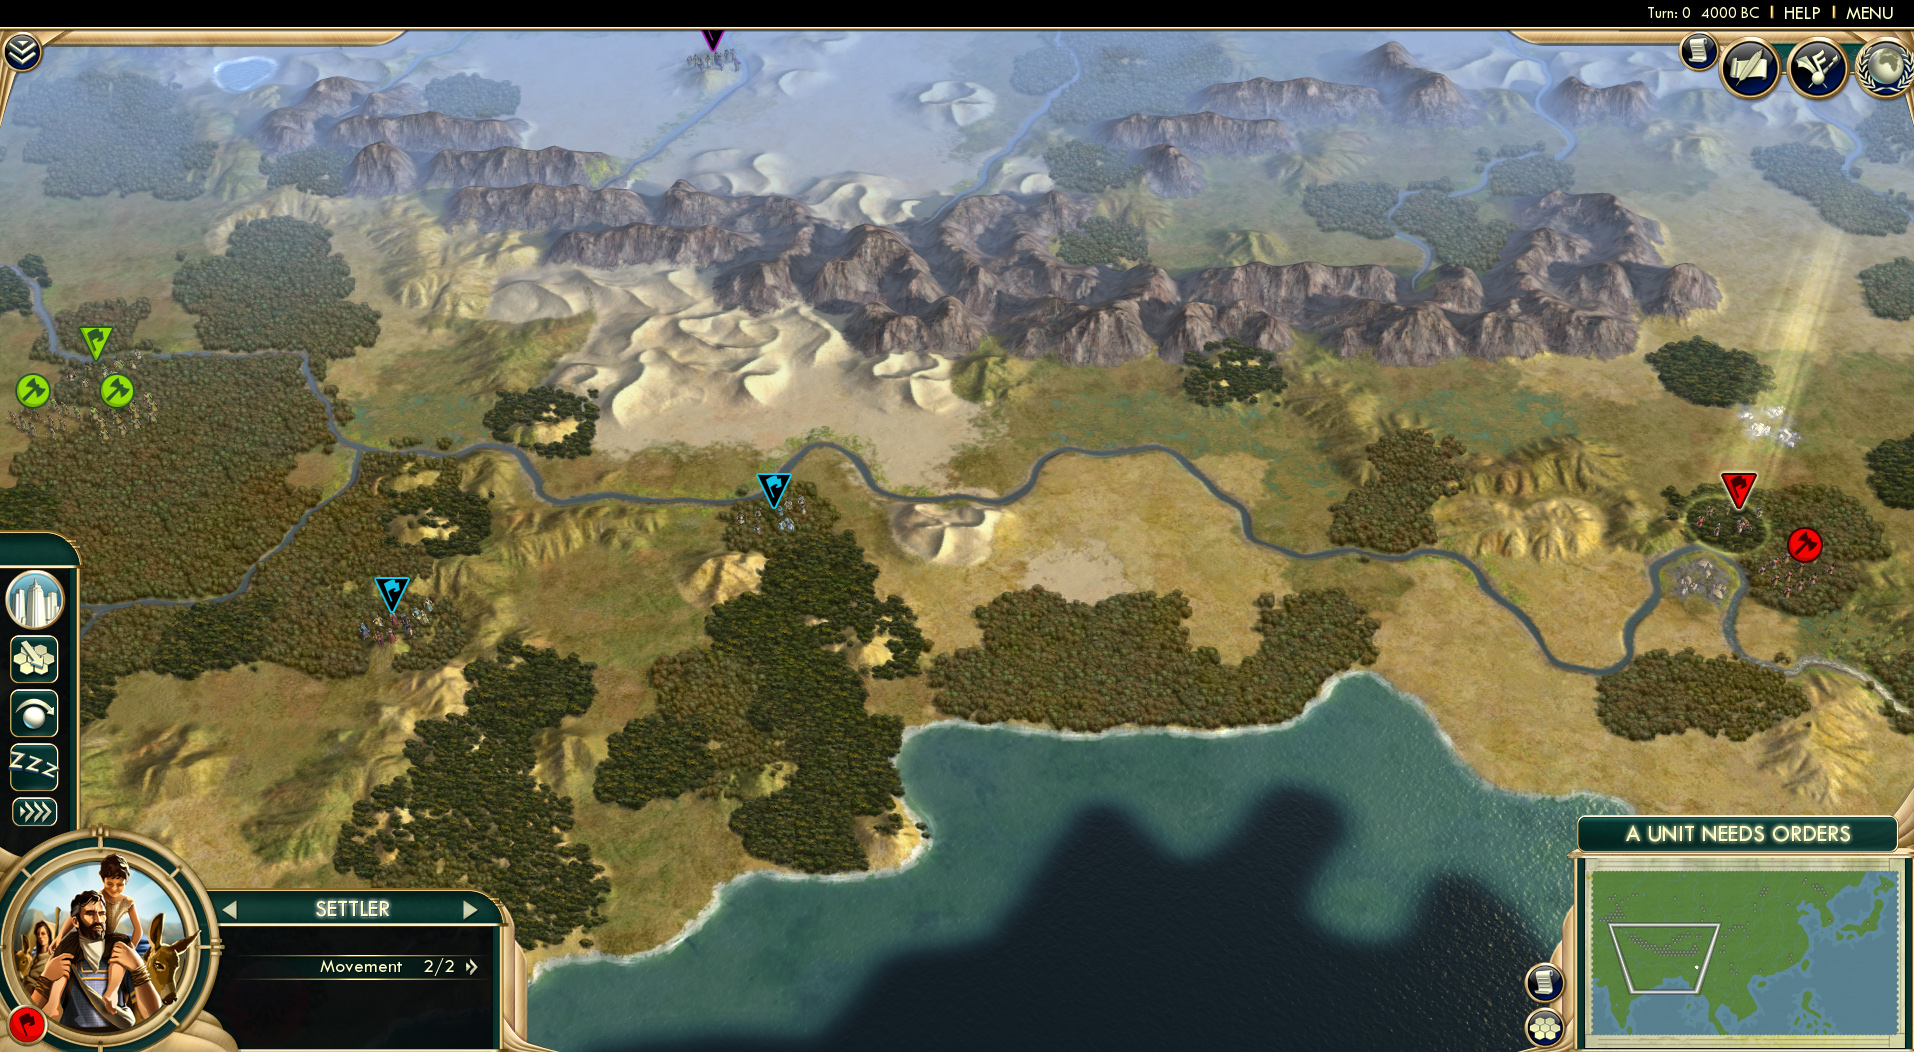 2k_civ-v_scrambled-continents-map-pack_east-asia-2